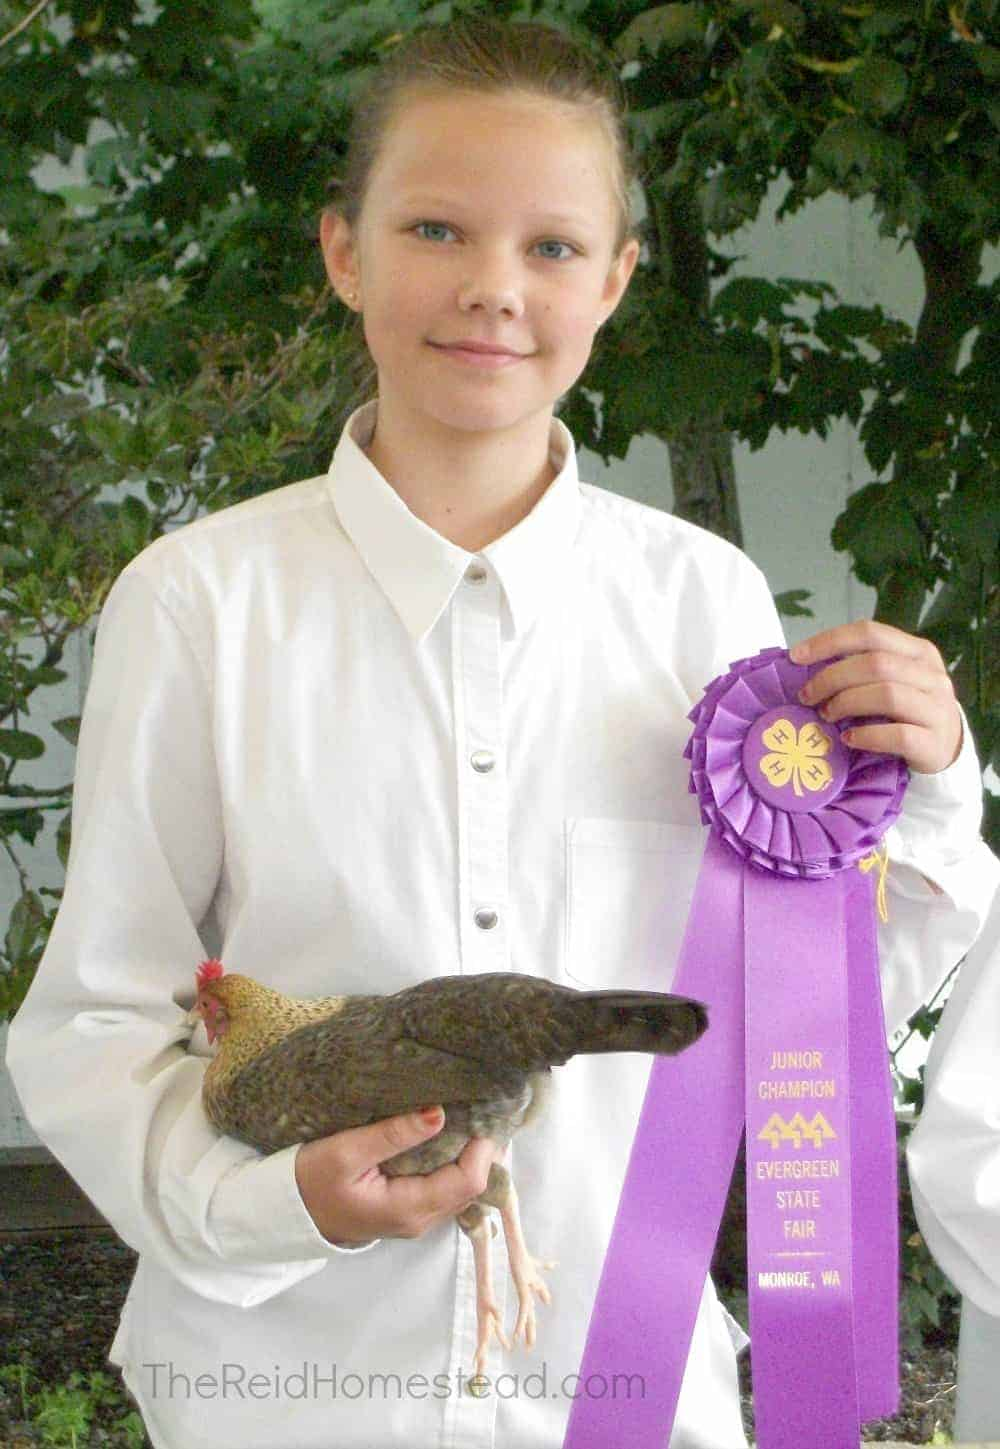 4-h girl holding chicken and junior poultry champion ribbon